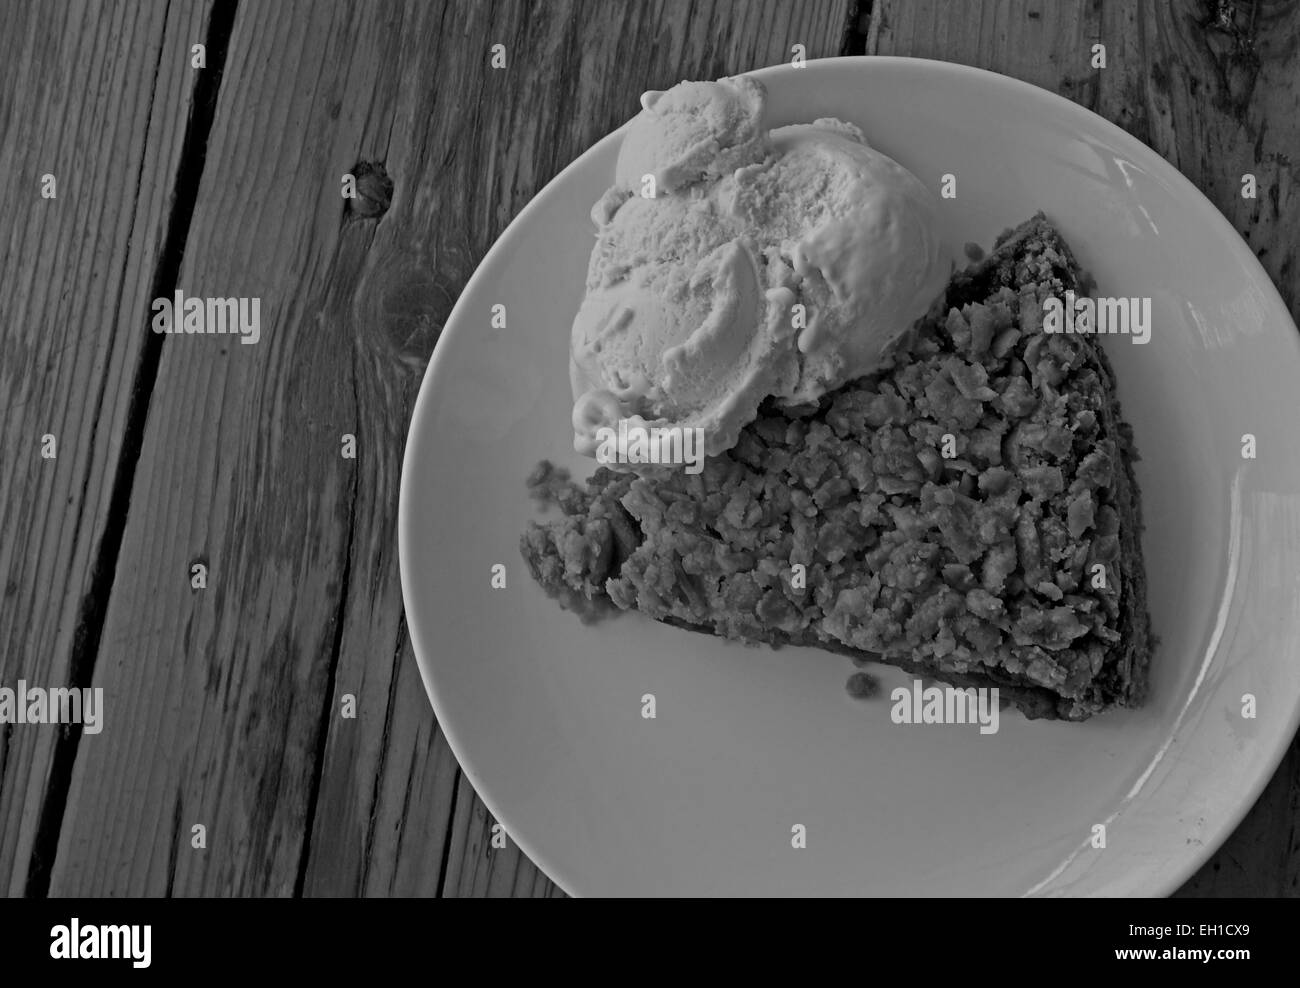 Black and white photograph of a piece of apple pie with ice cream on a plate. - Stock Image